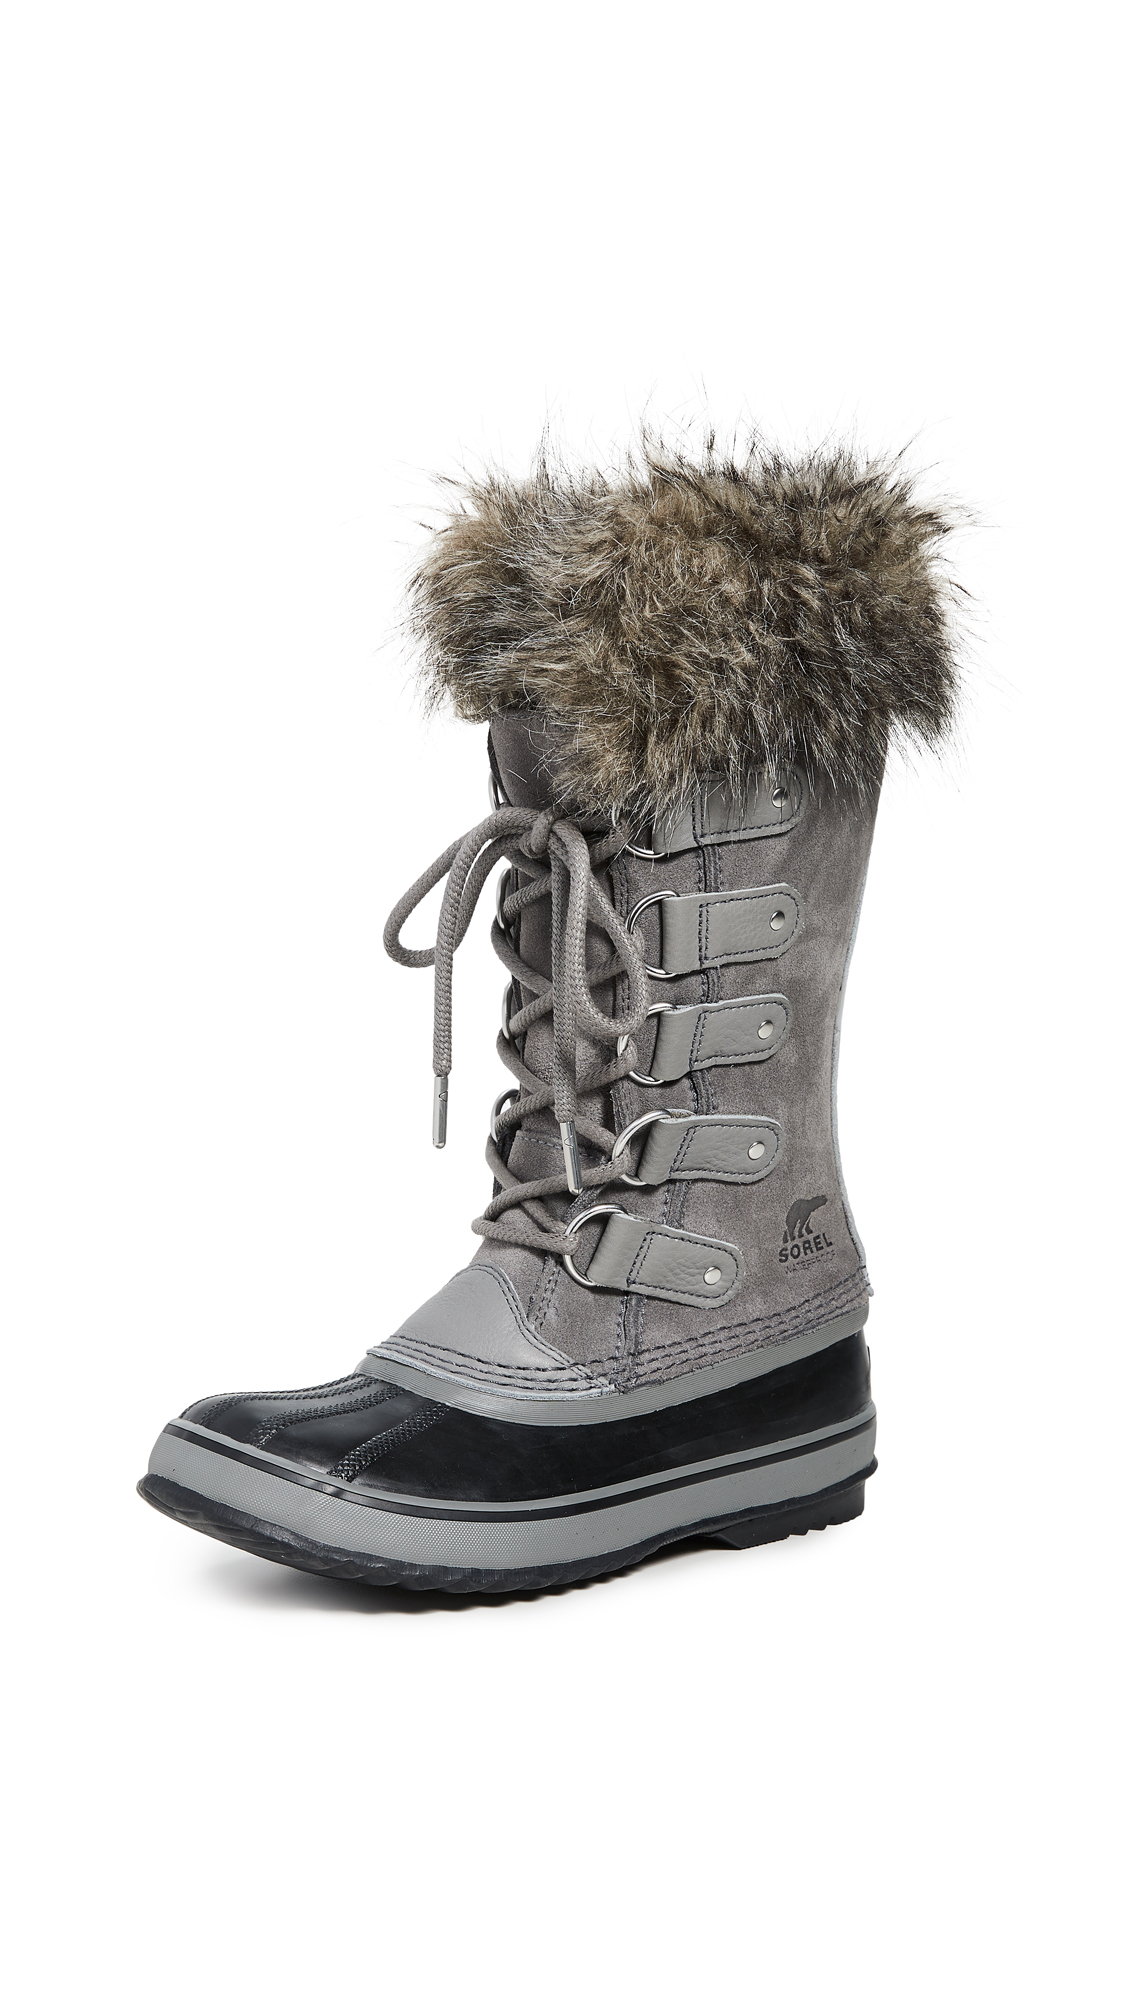 Sorel Joan of Arctic Boots - 30% Off Sale